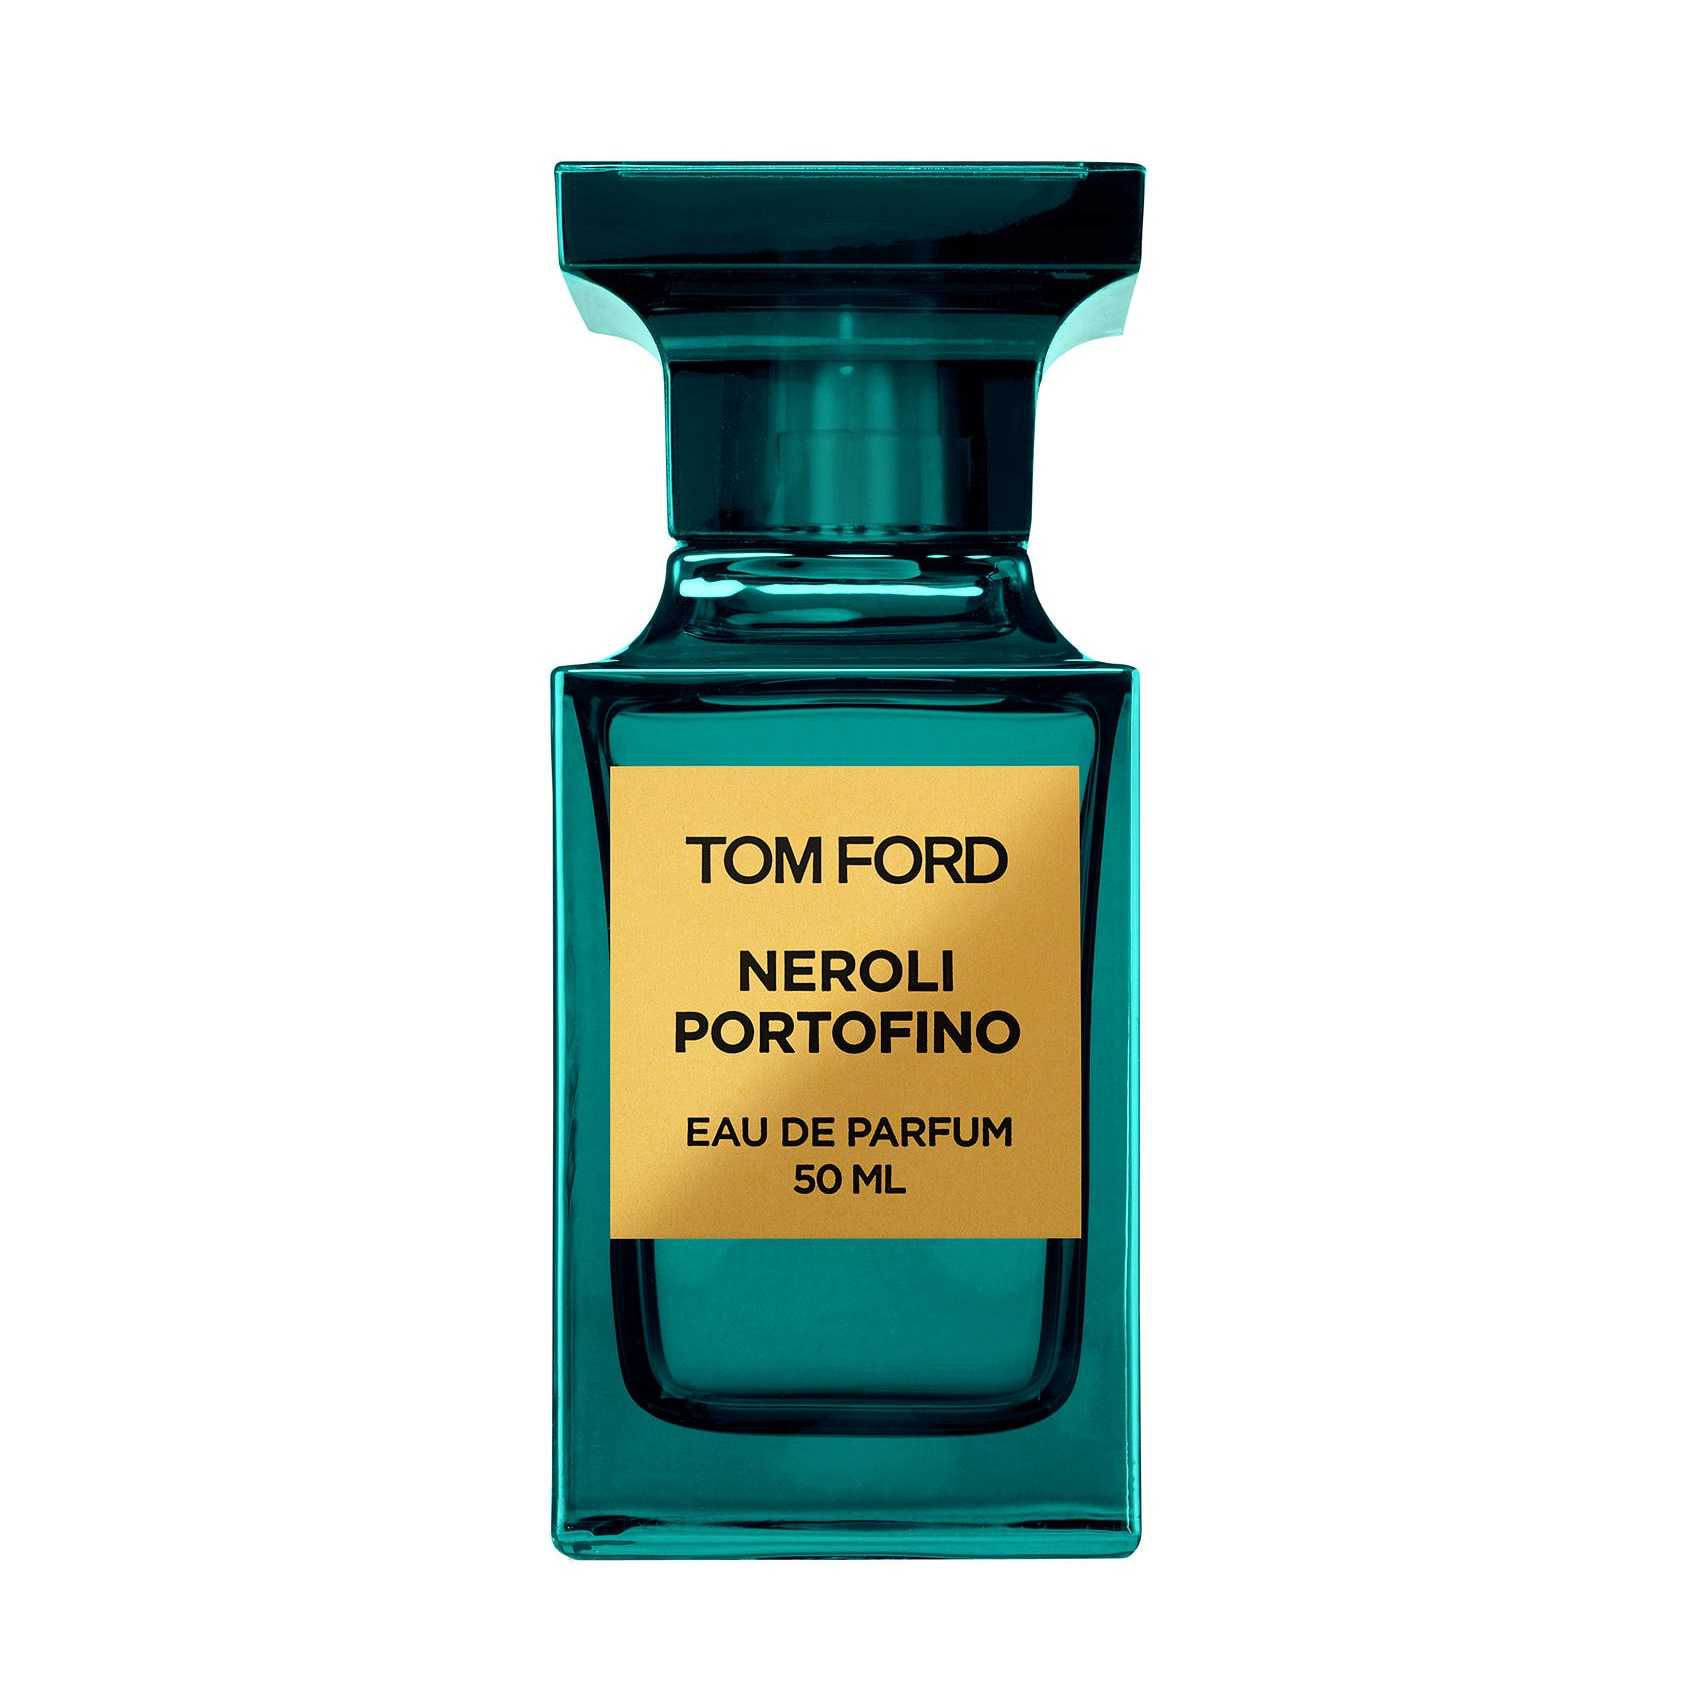 Tom Ford Neroli Portofino - Eau De Parfum For Men and Women